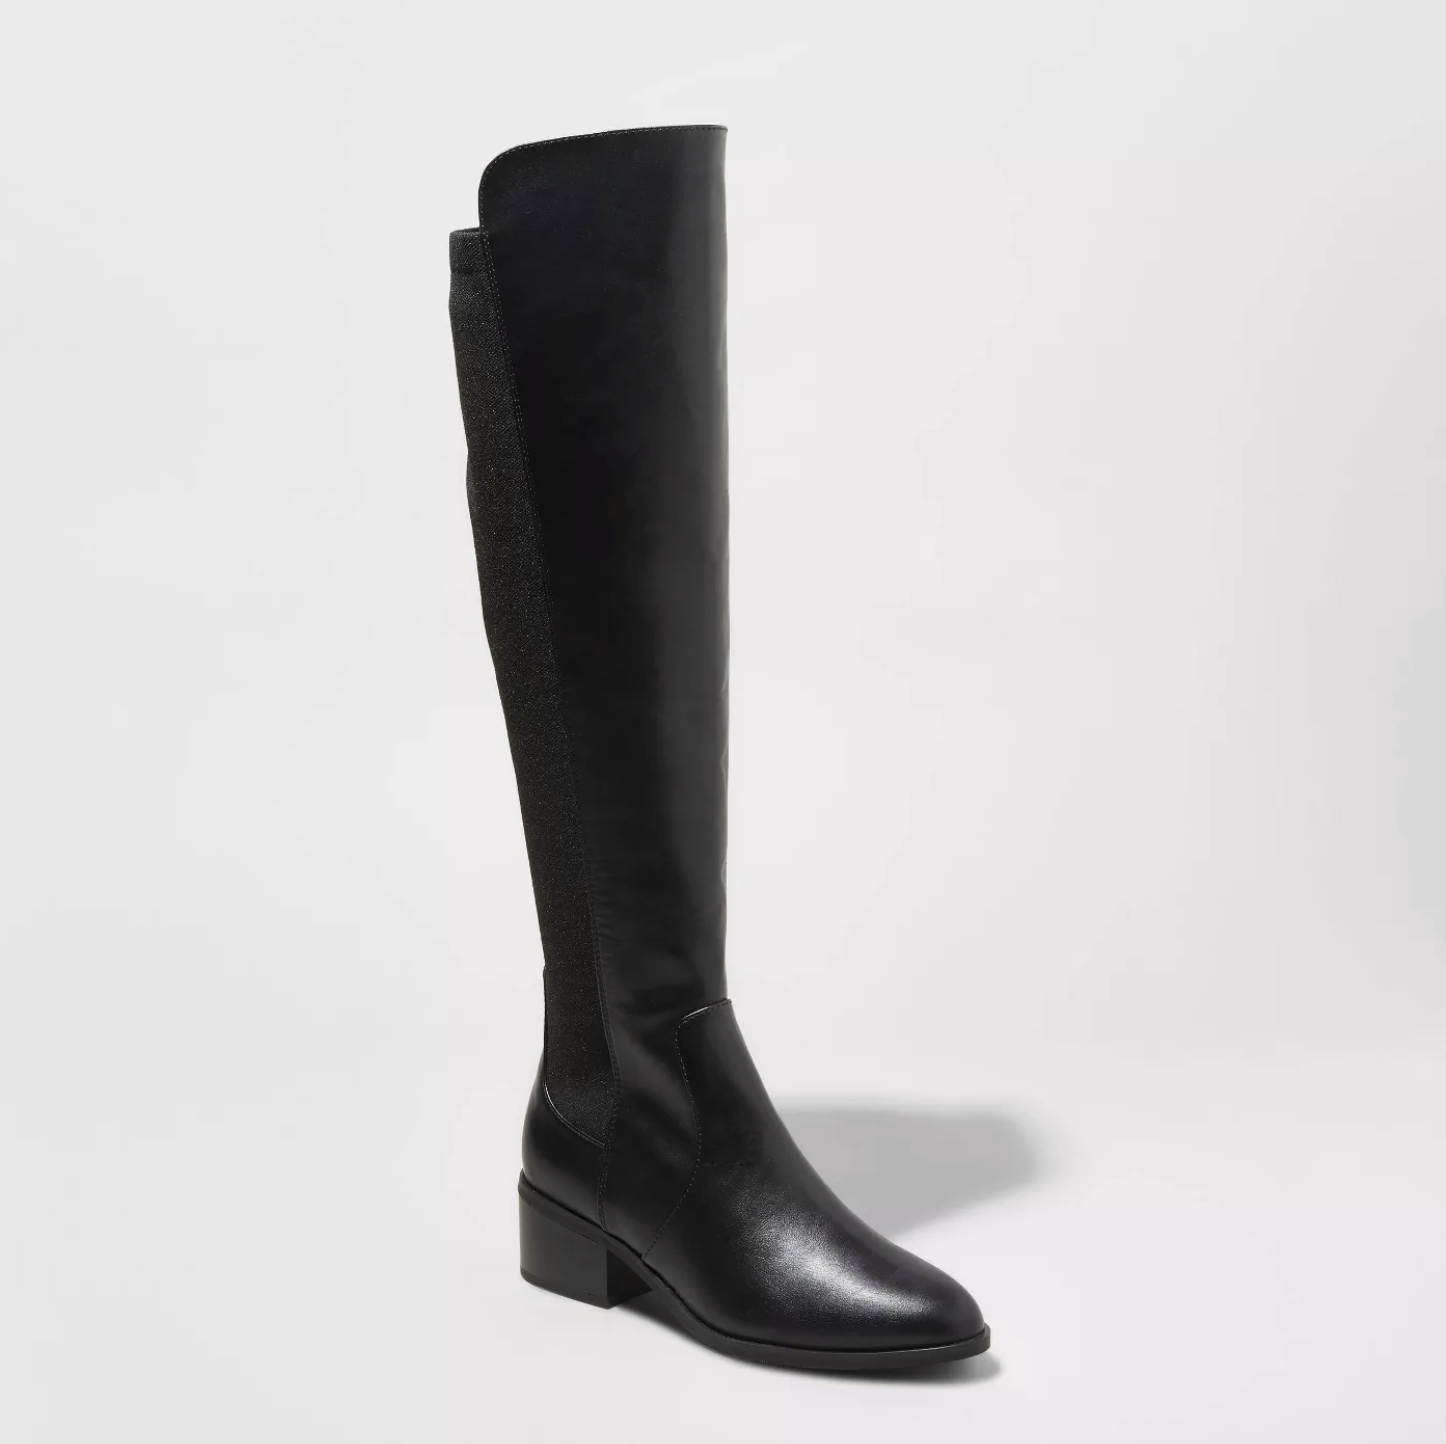 plain black leather boot with a short heel